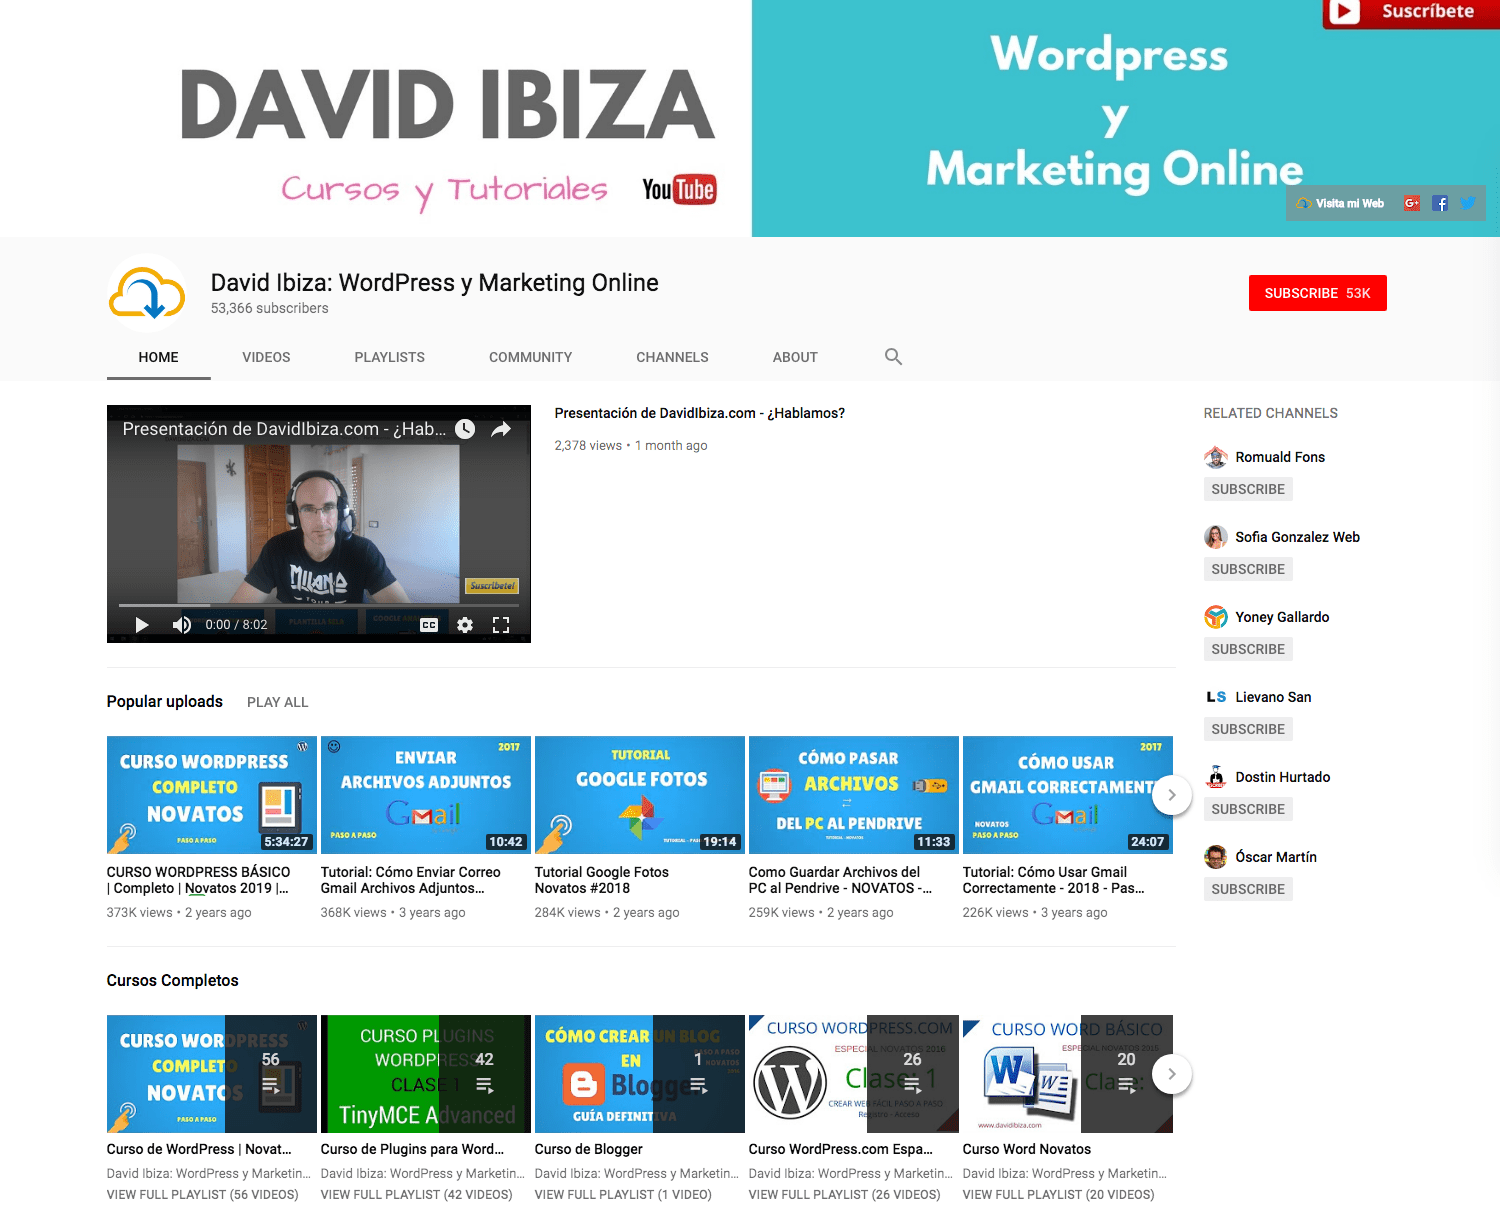 Tutoriales de David Ibiza en Youtube.